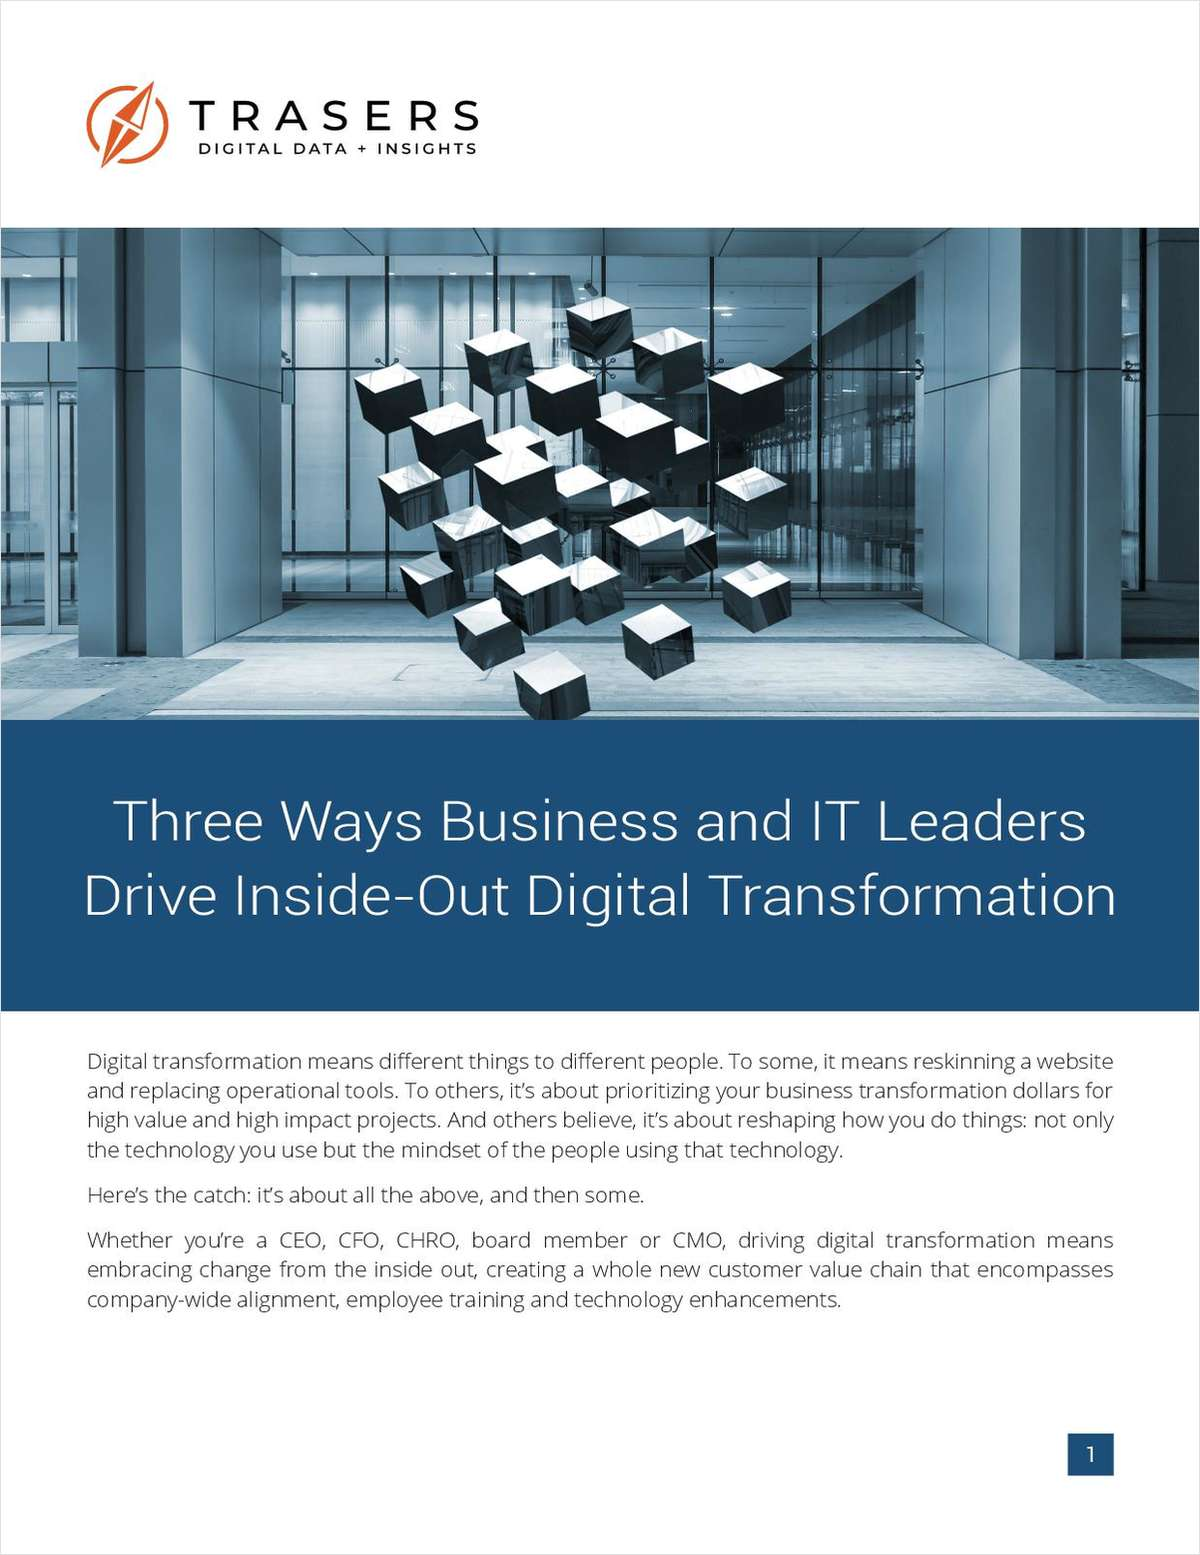 Three Ways Business and IT Leaders Drive Inside-Out Digital Transformation